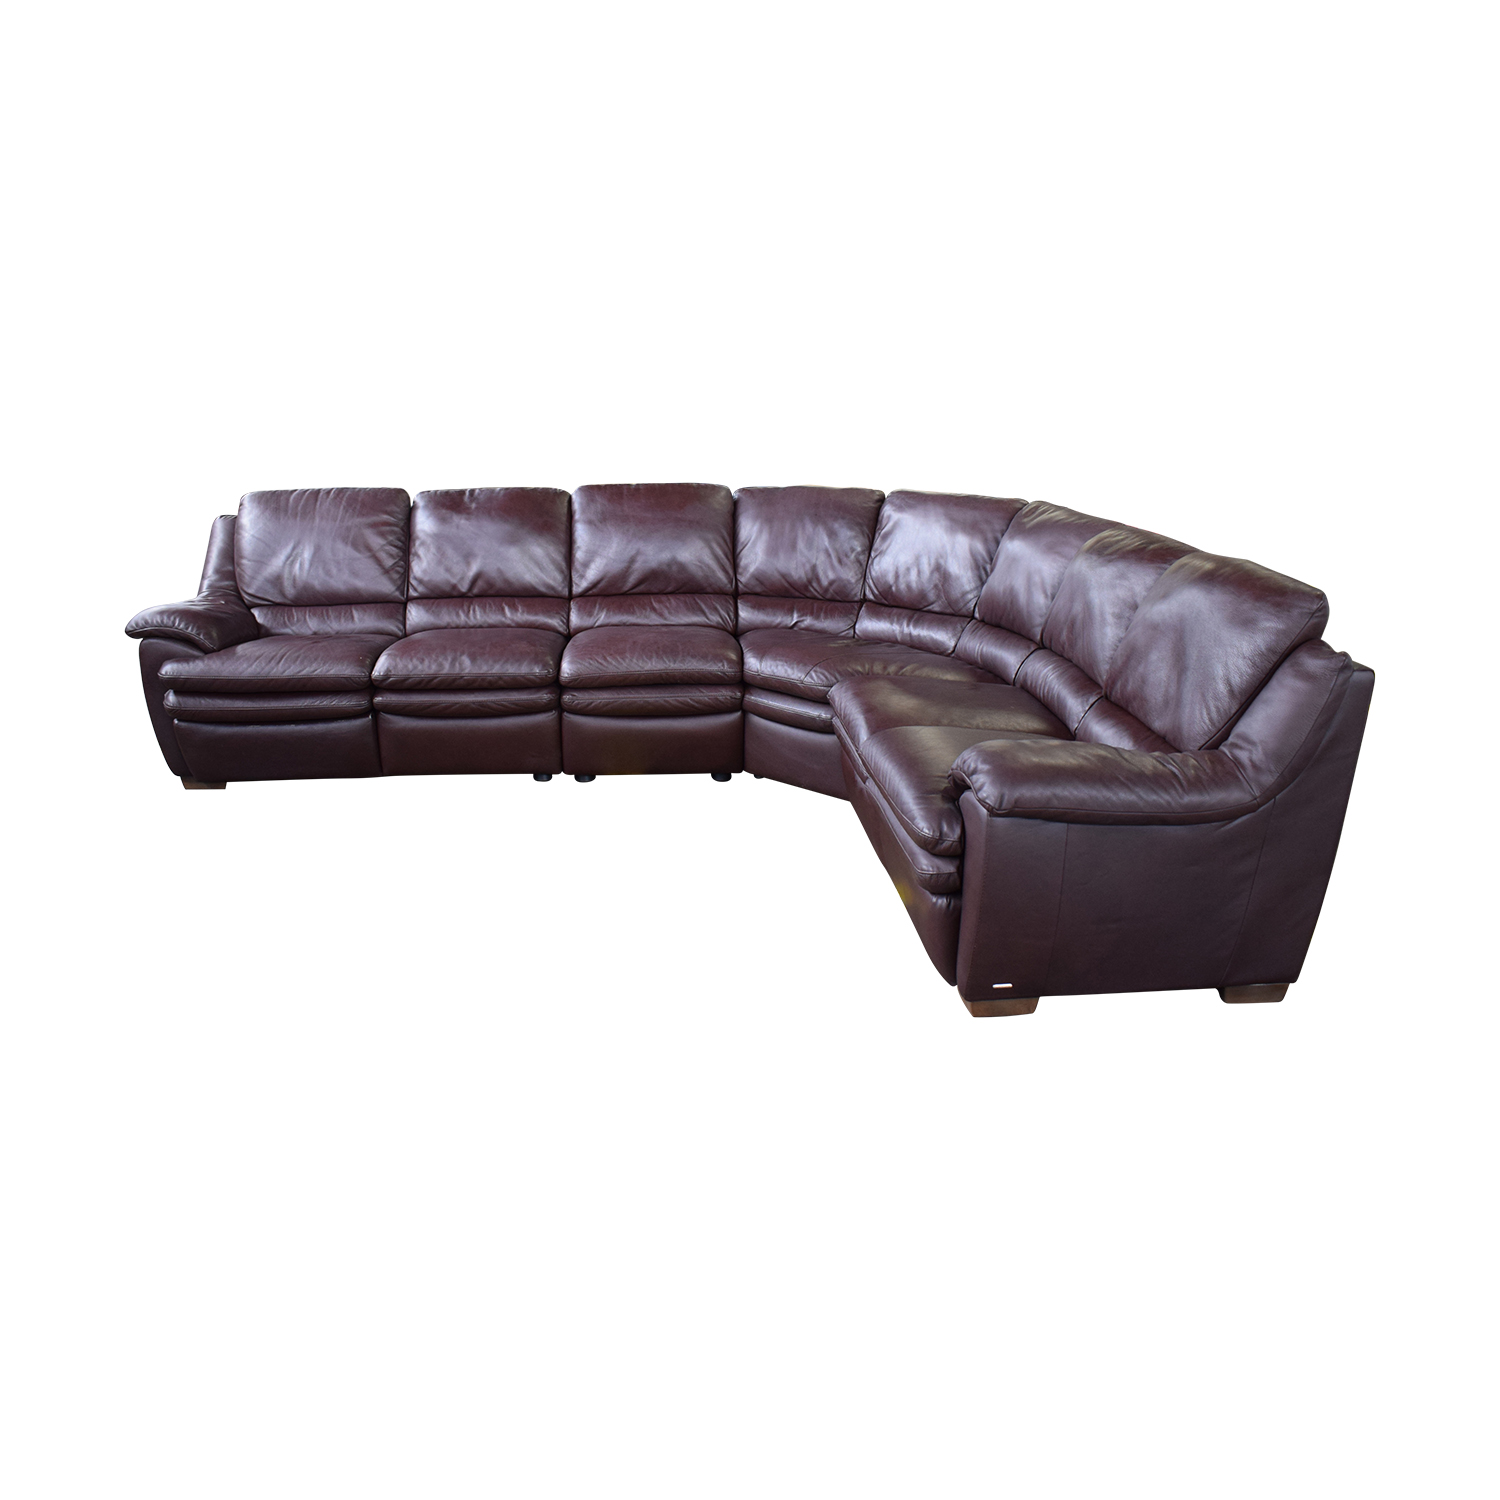 Natuzzi Natuzzi Reclining Sectional Sofa